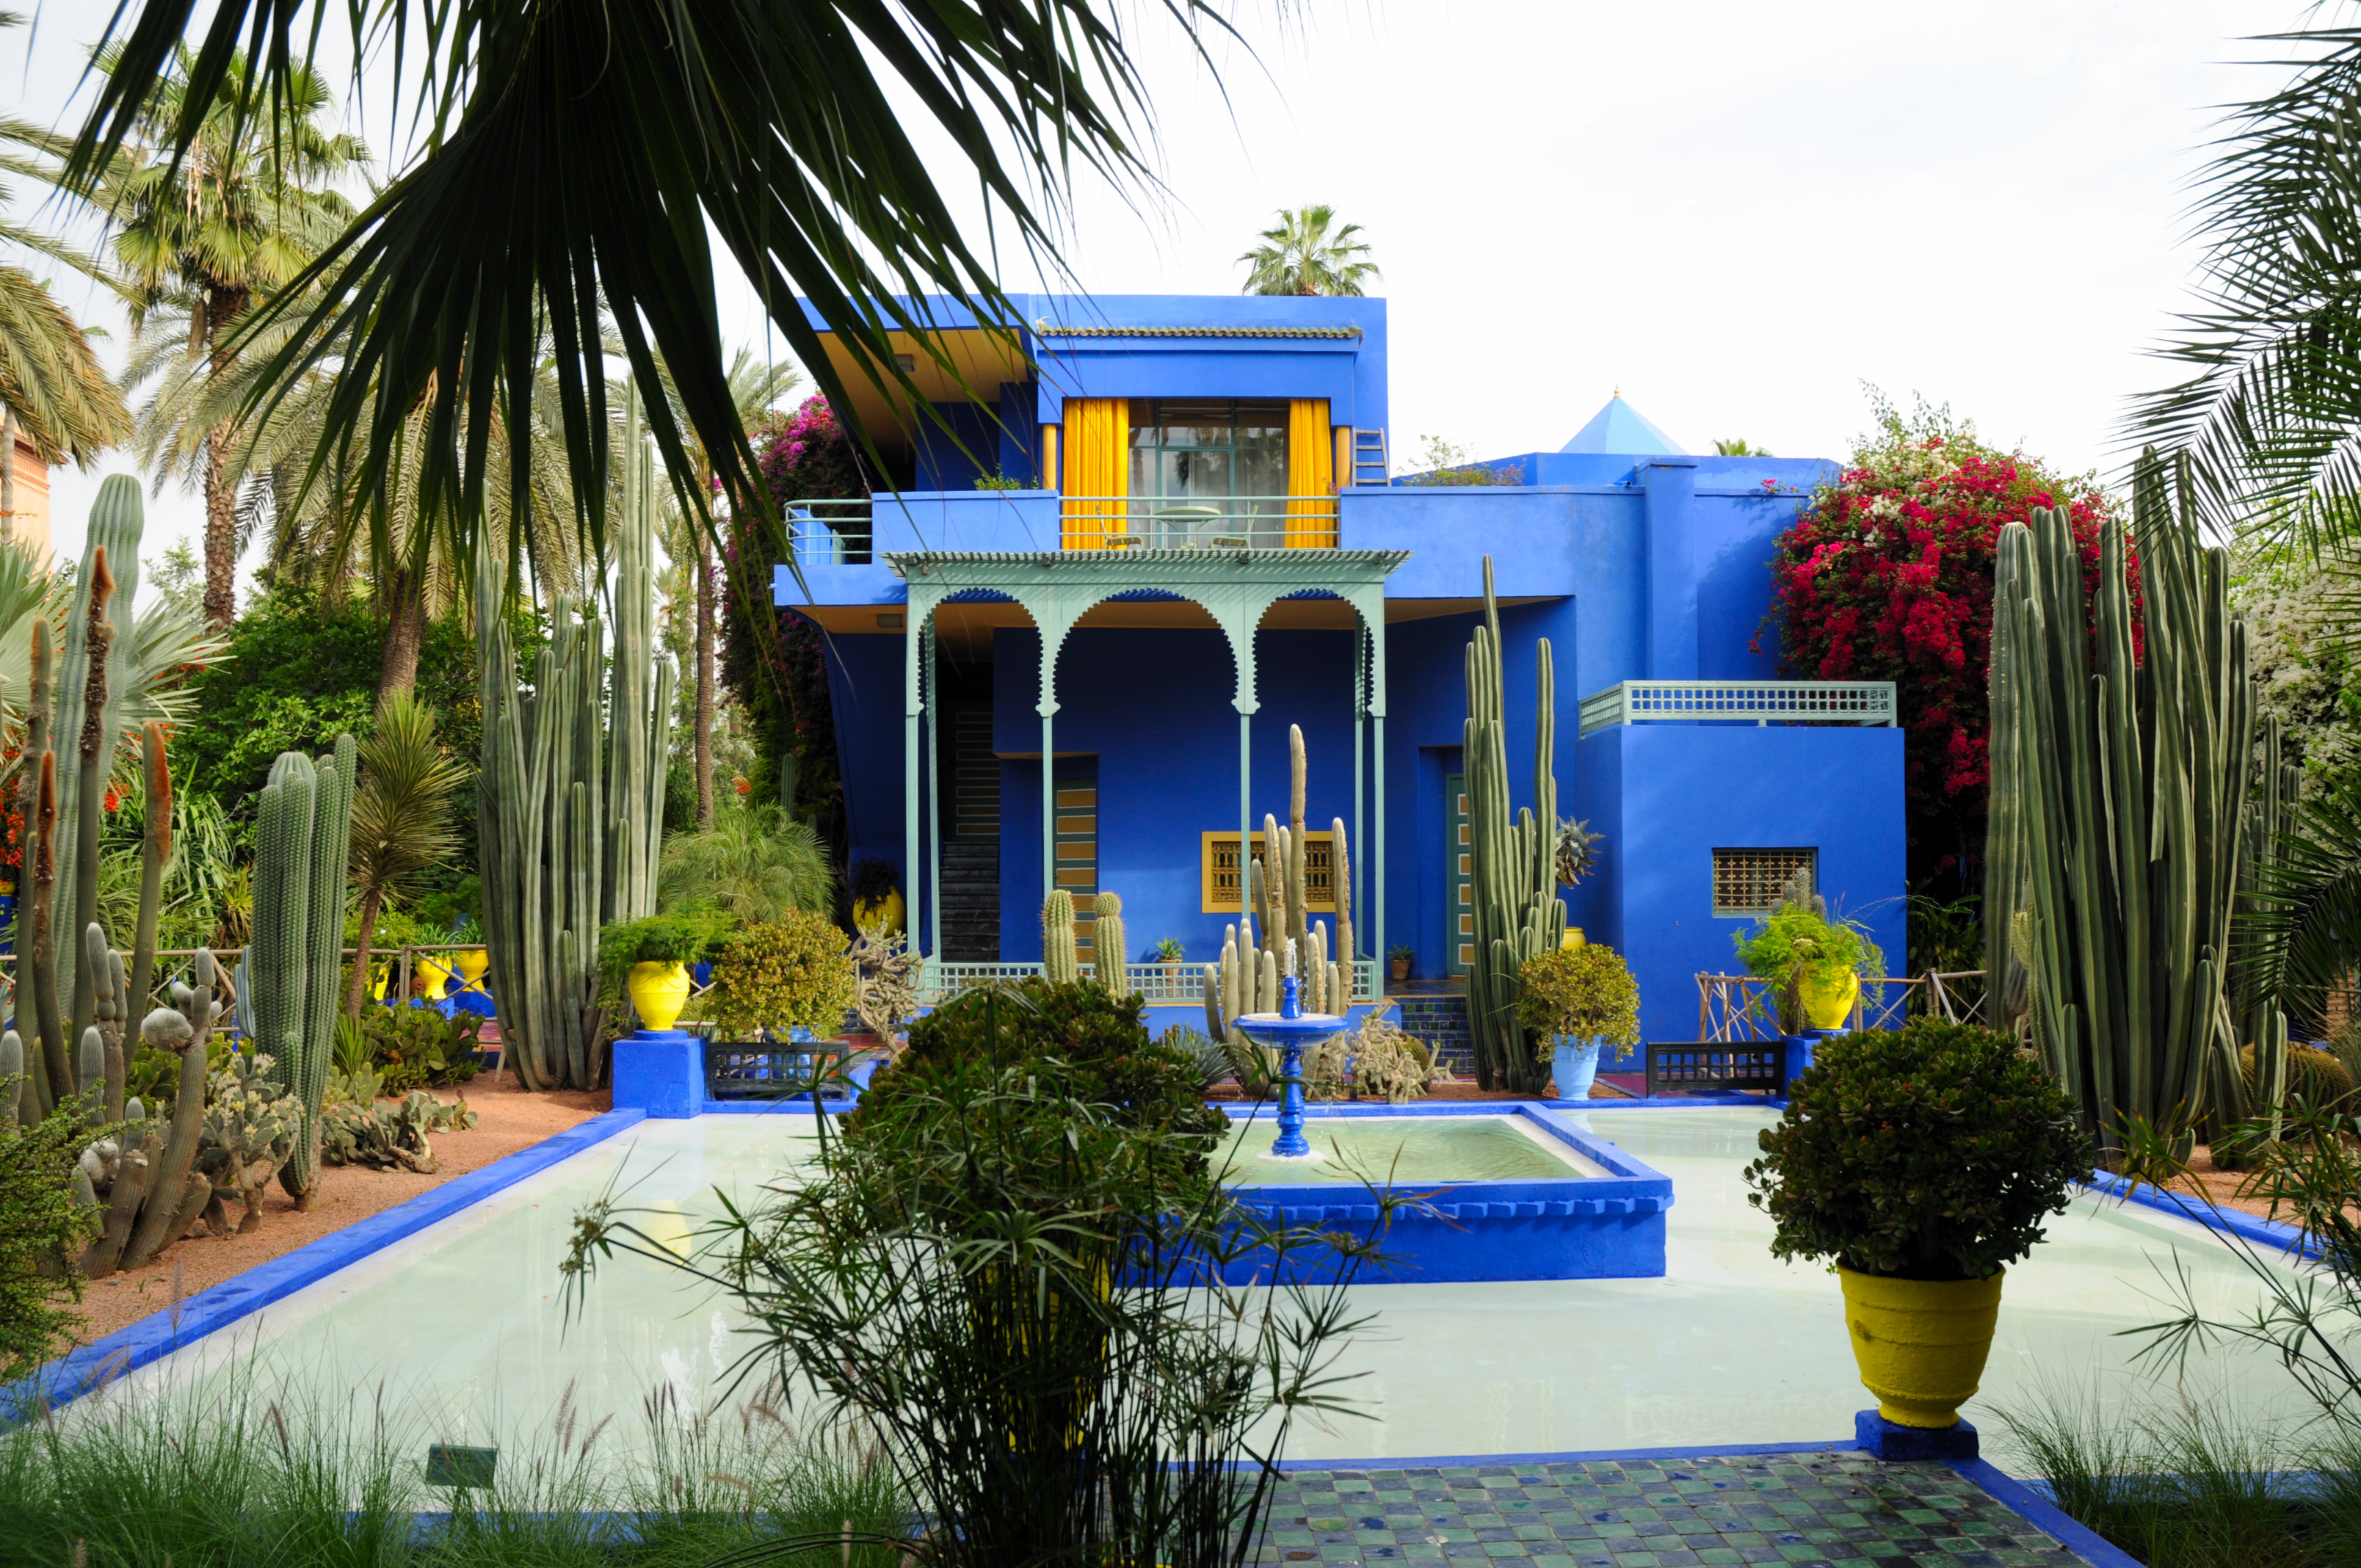 archivo le jardin des majorelle 16 jpg wikipedia la enciclopedia libre. Black Bedroom Furniture Sets. Home Design Ideas